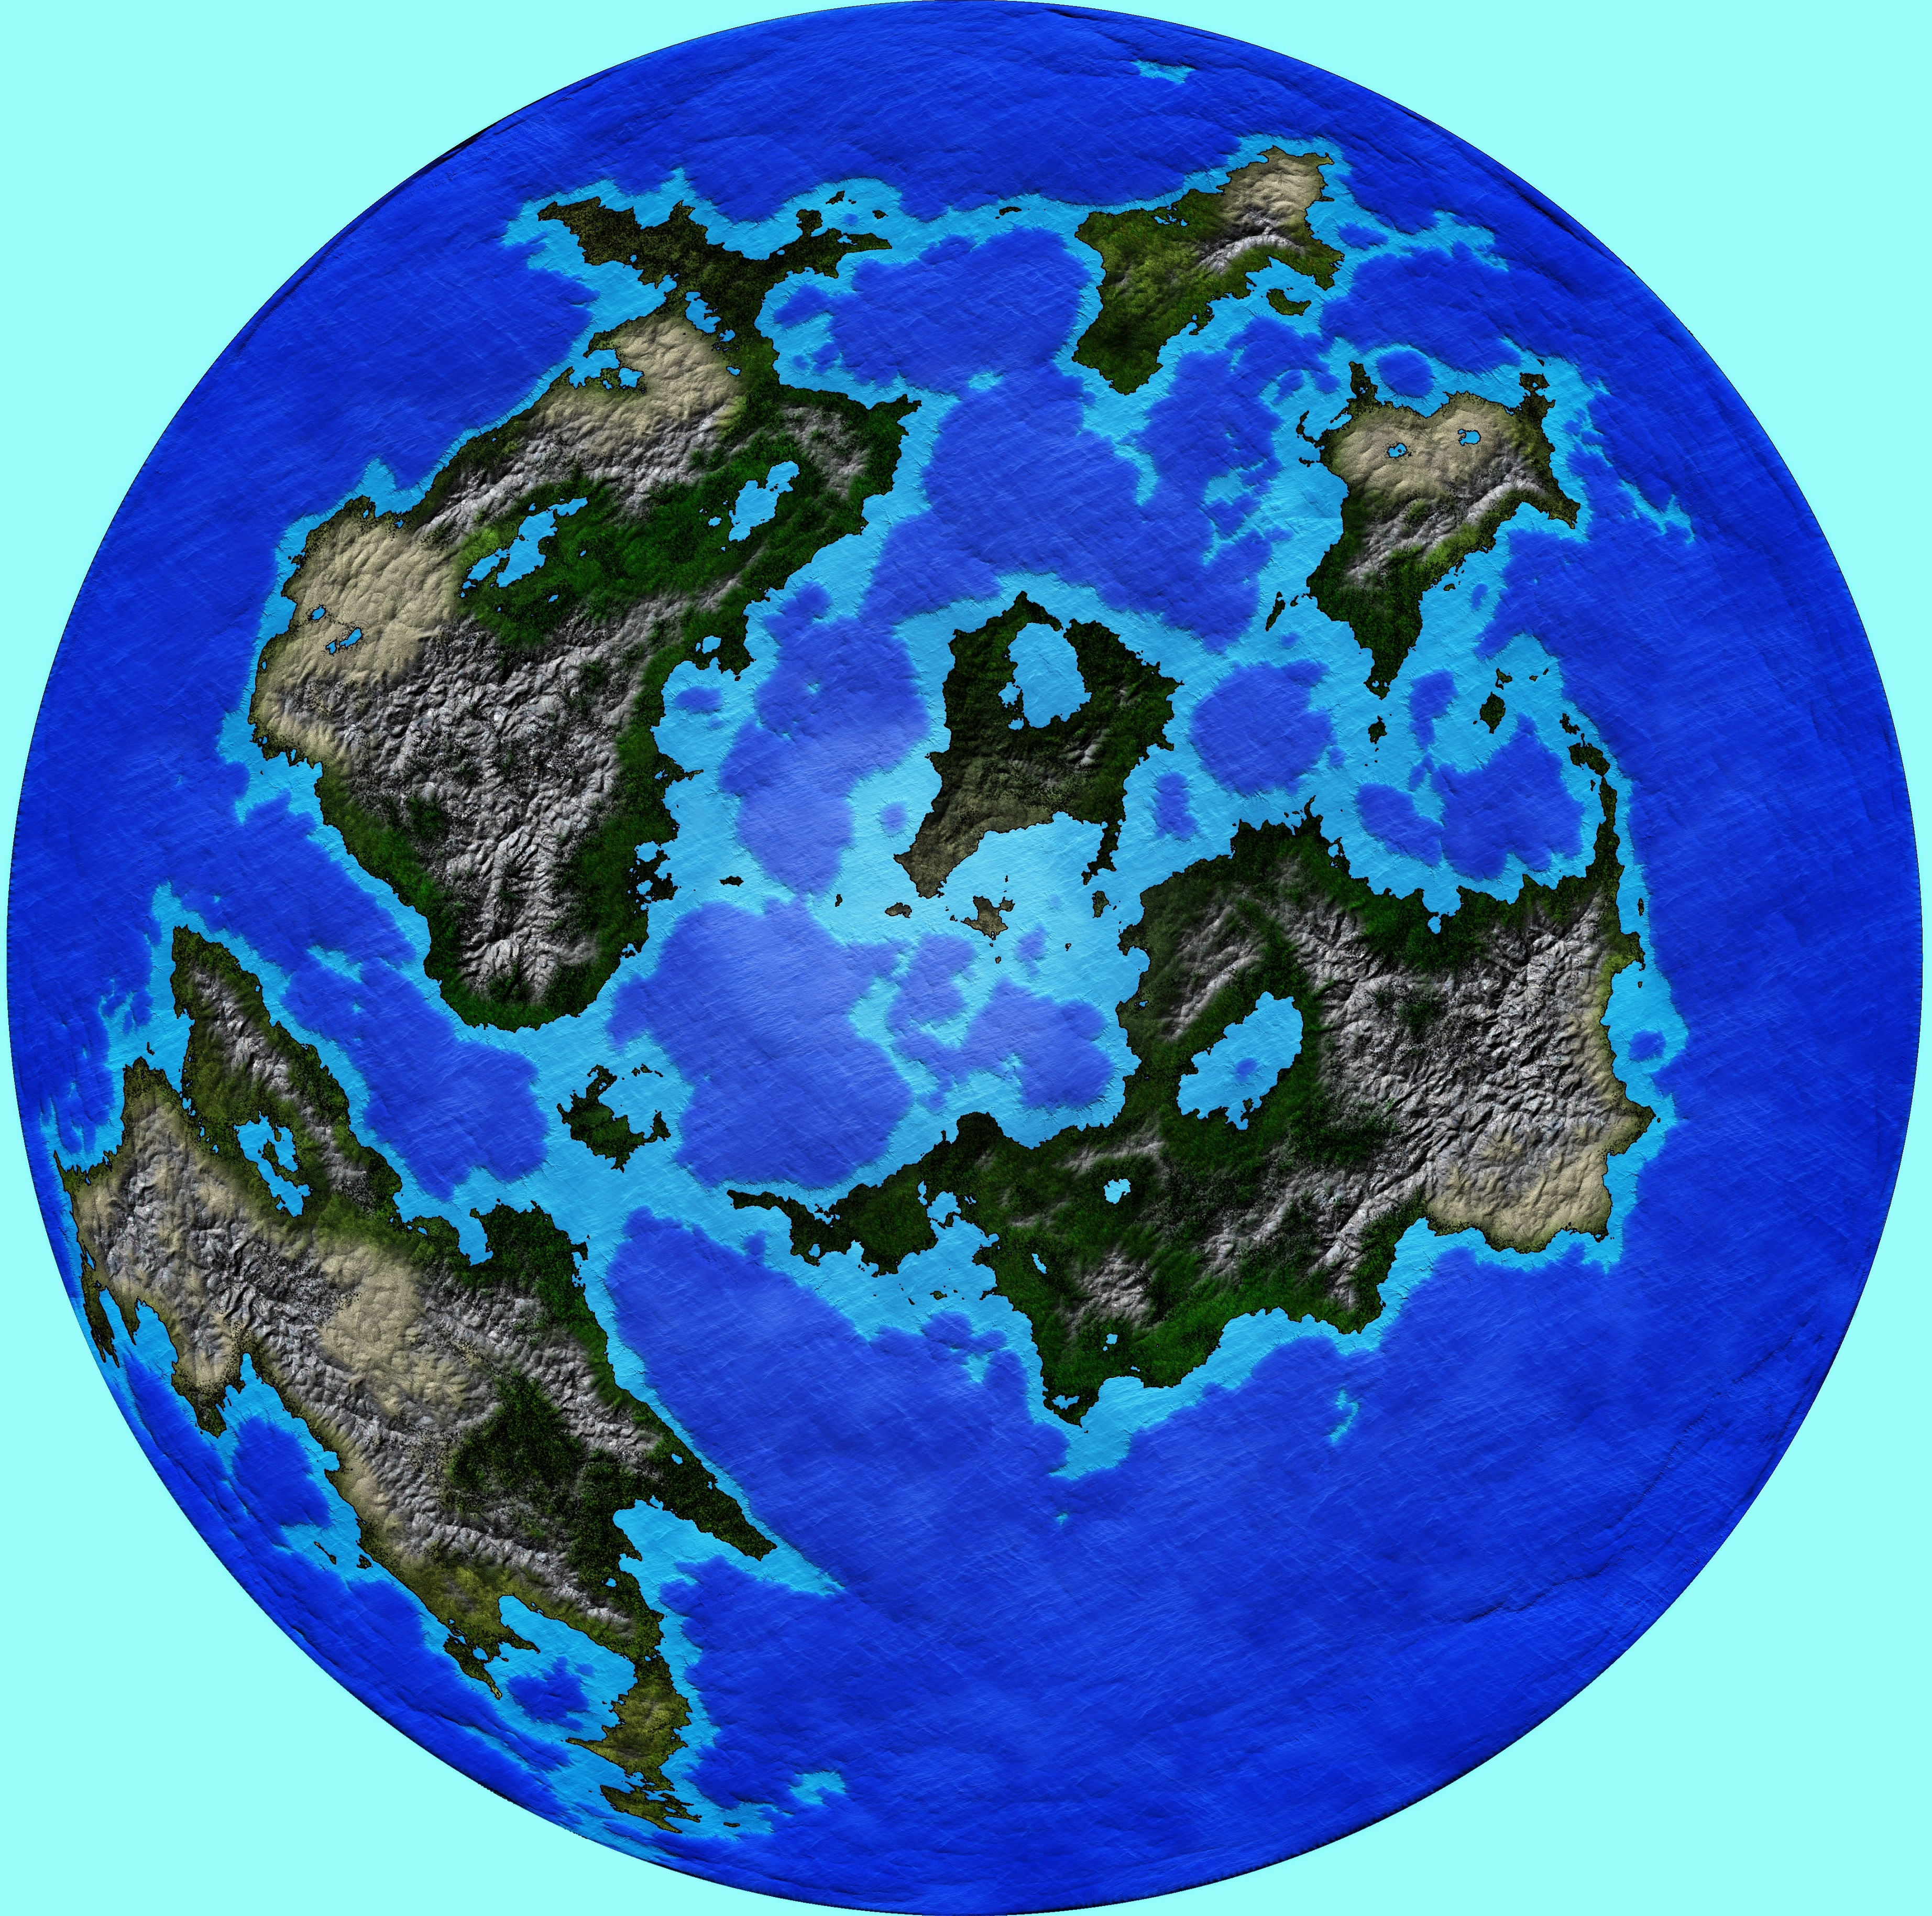 Tuloras World - Working Copy for world building